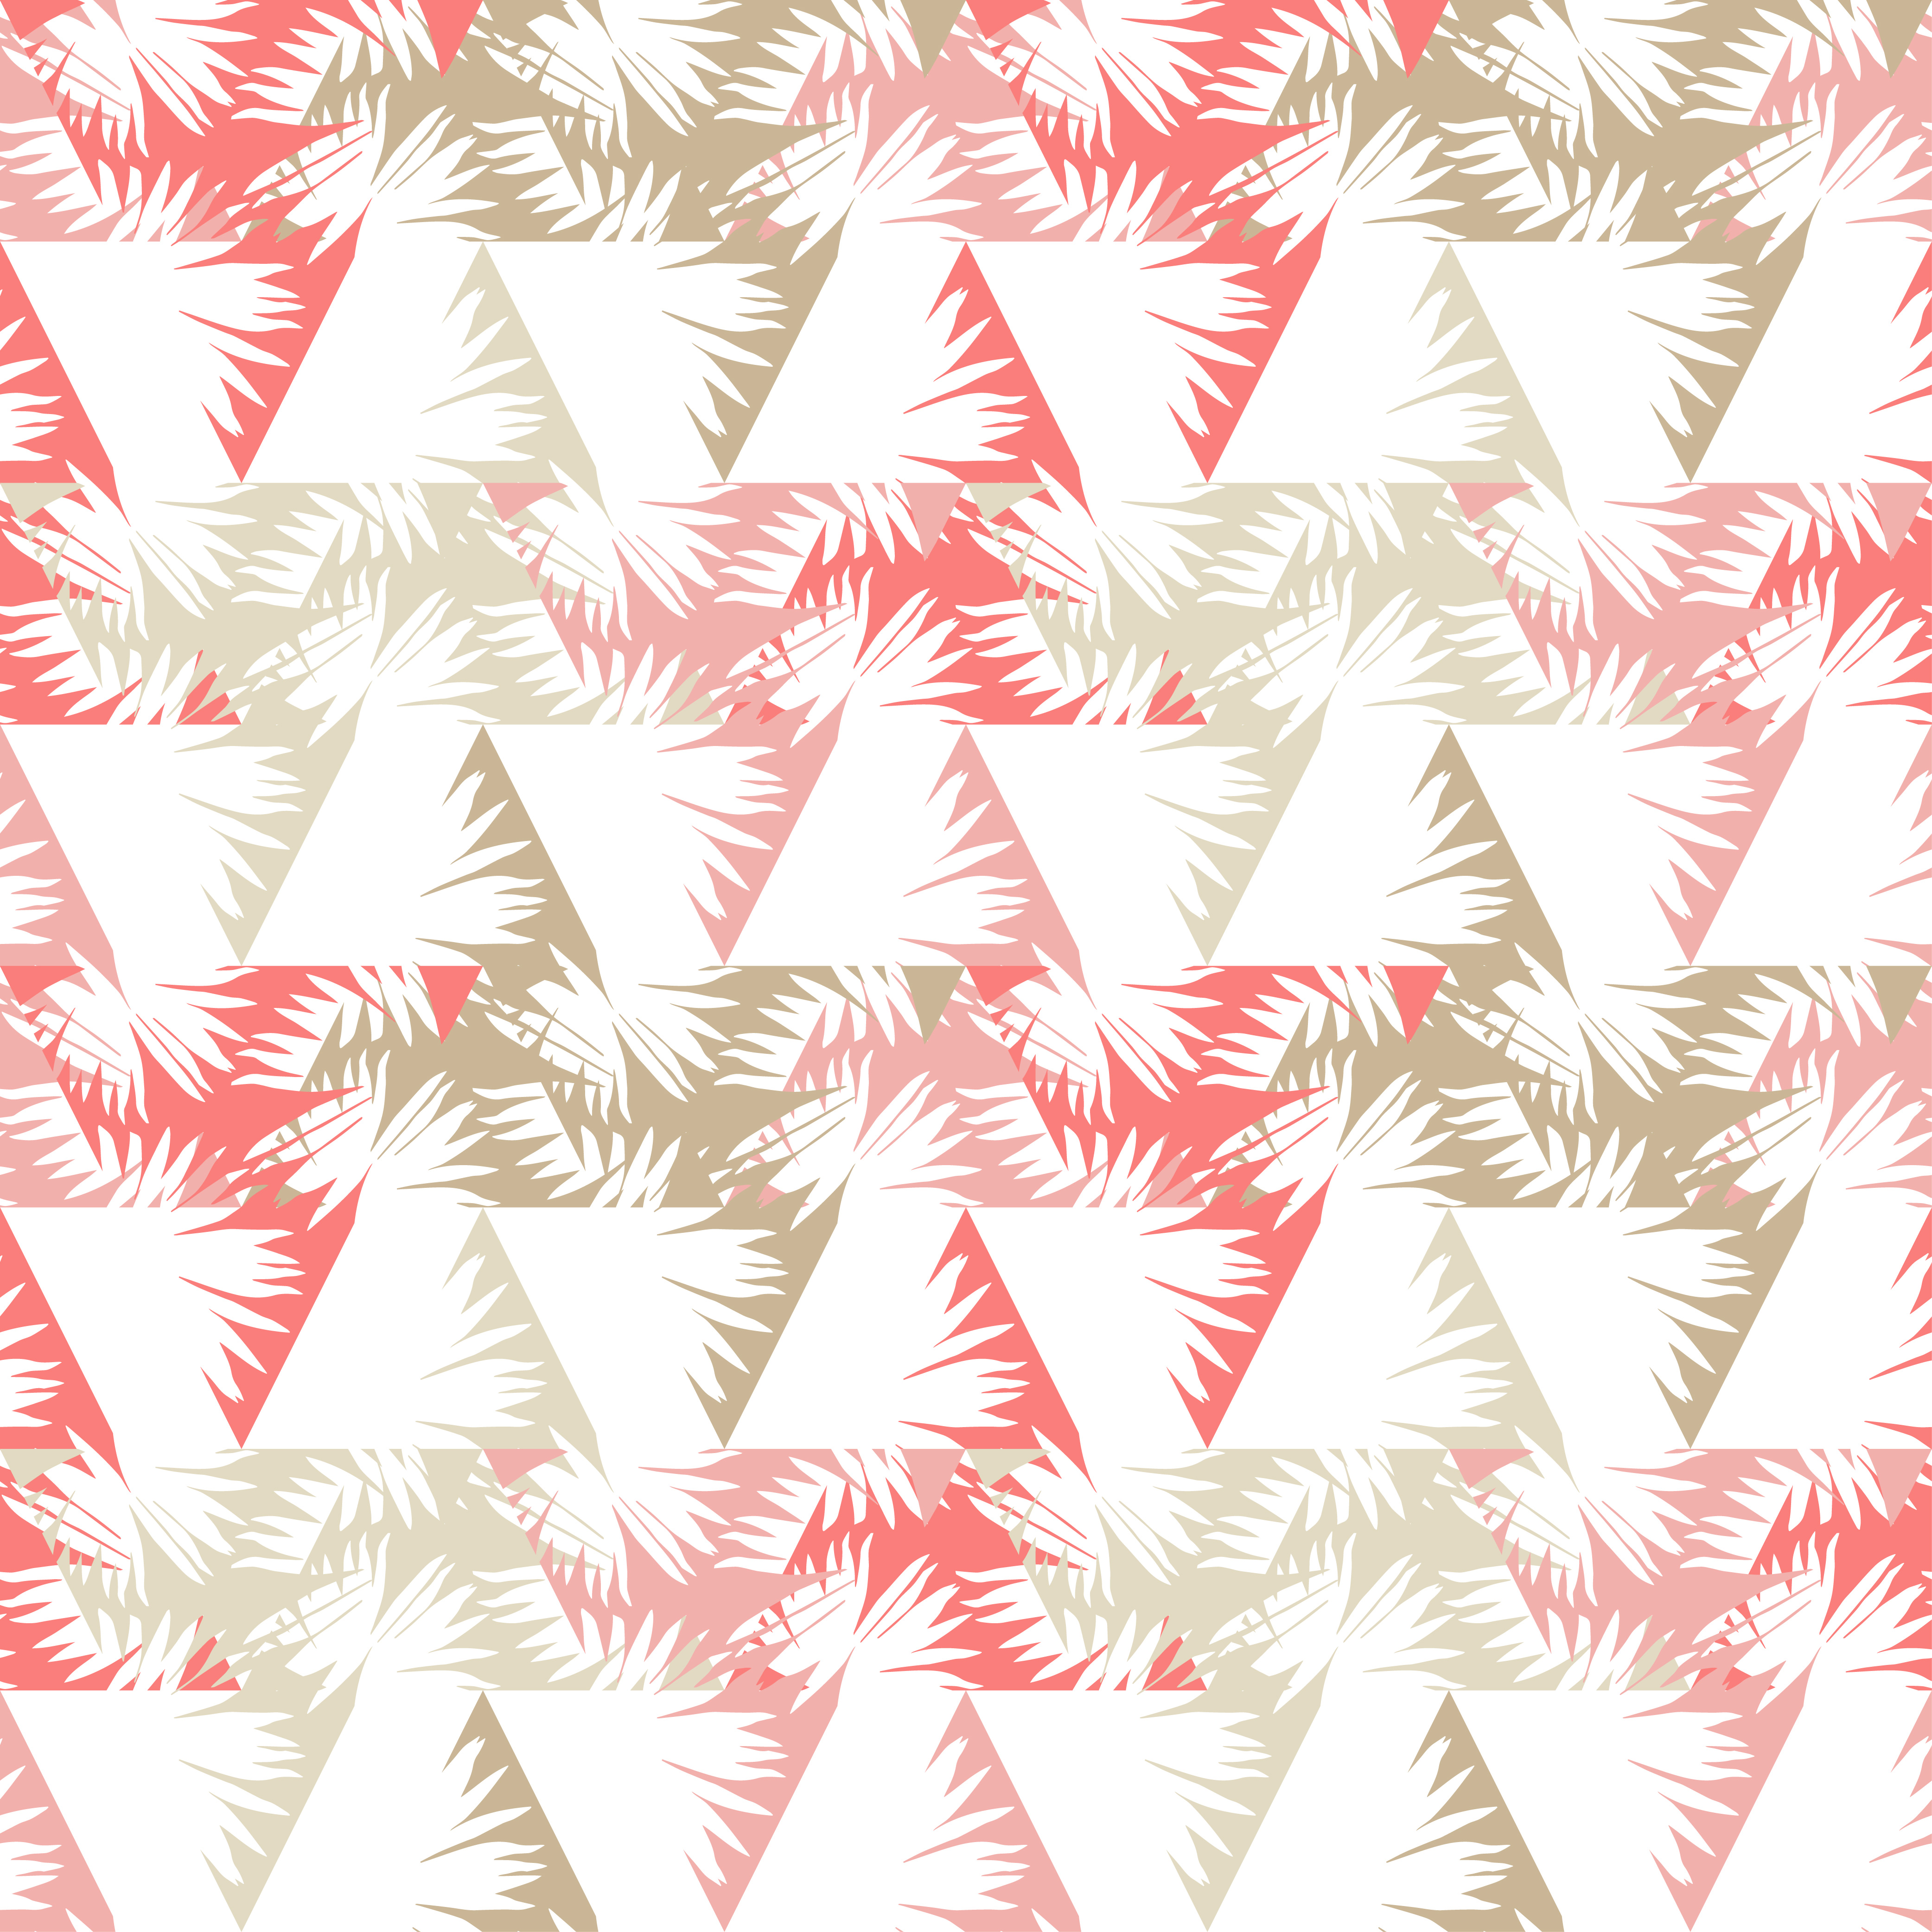 Seamless background with decorative leaves. Palm branch leaves in triangles. example image 1